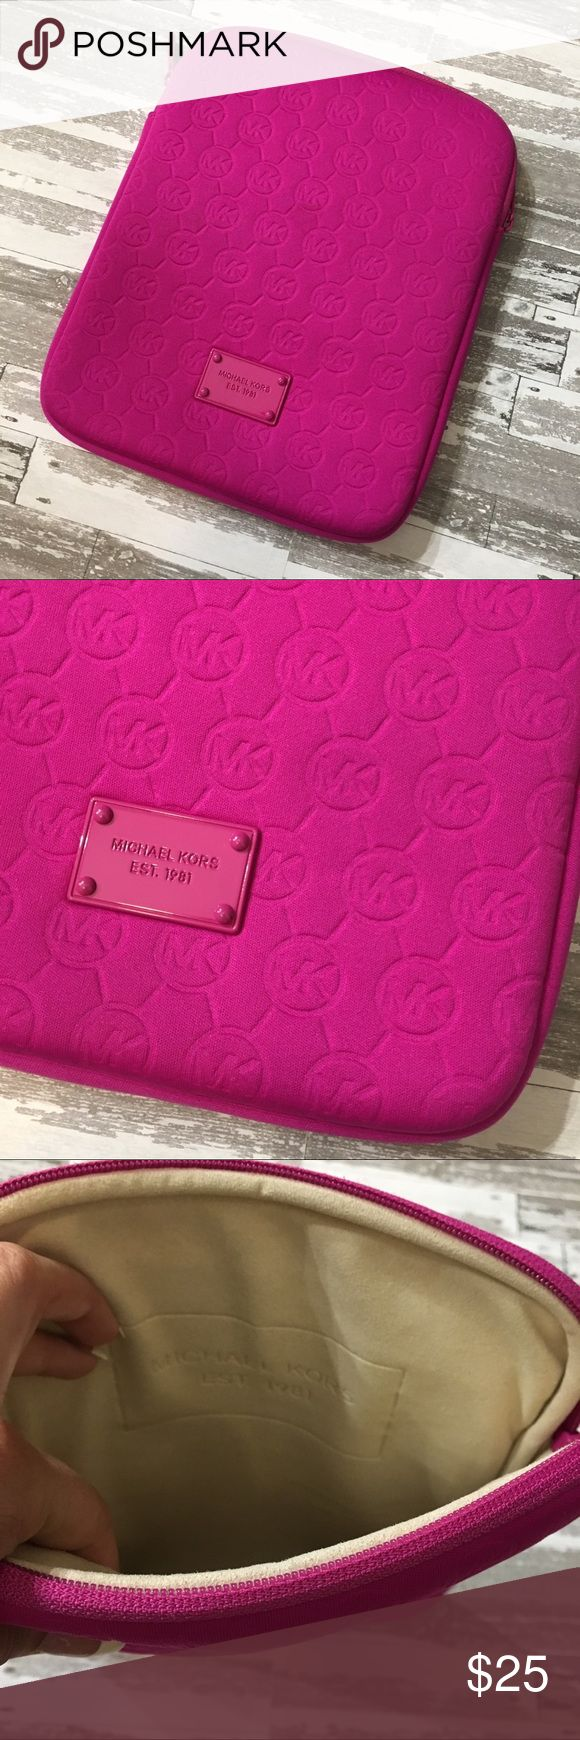 Michael Kors iPad Case Soft Material, great case and very protective. Hot pink/ Fuchsia in color, no wear or marks. Fits regular sized iPad. Michael Kors Accessories Tablet Cases